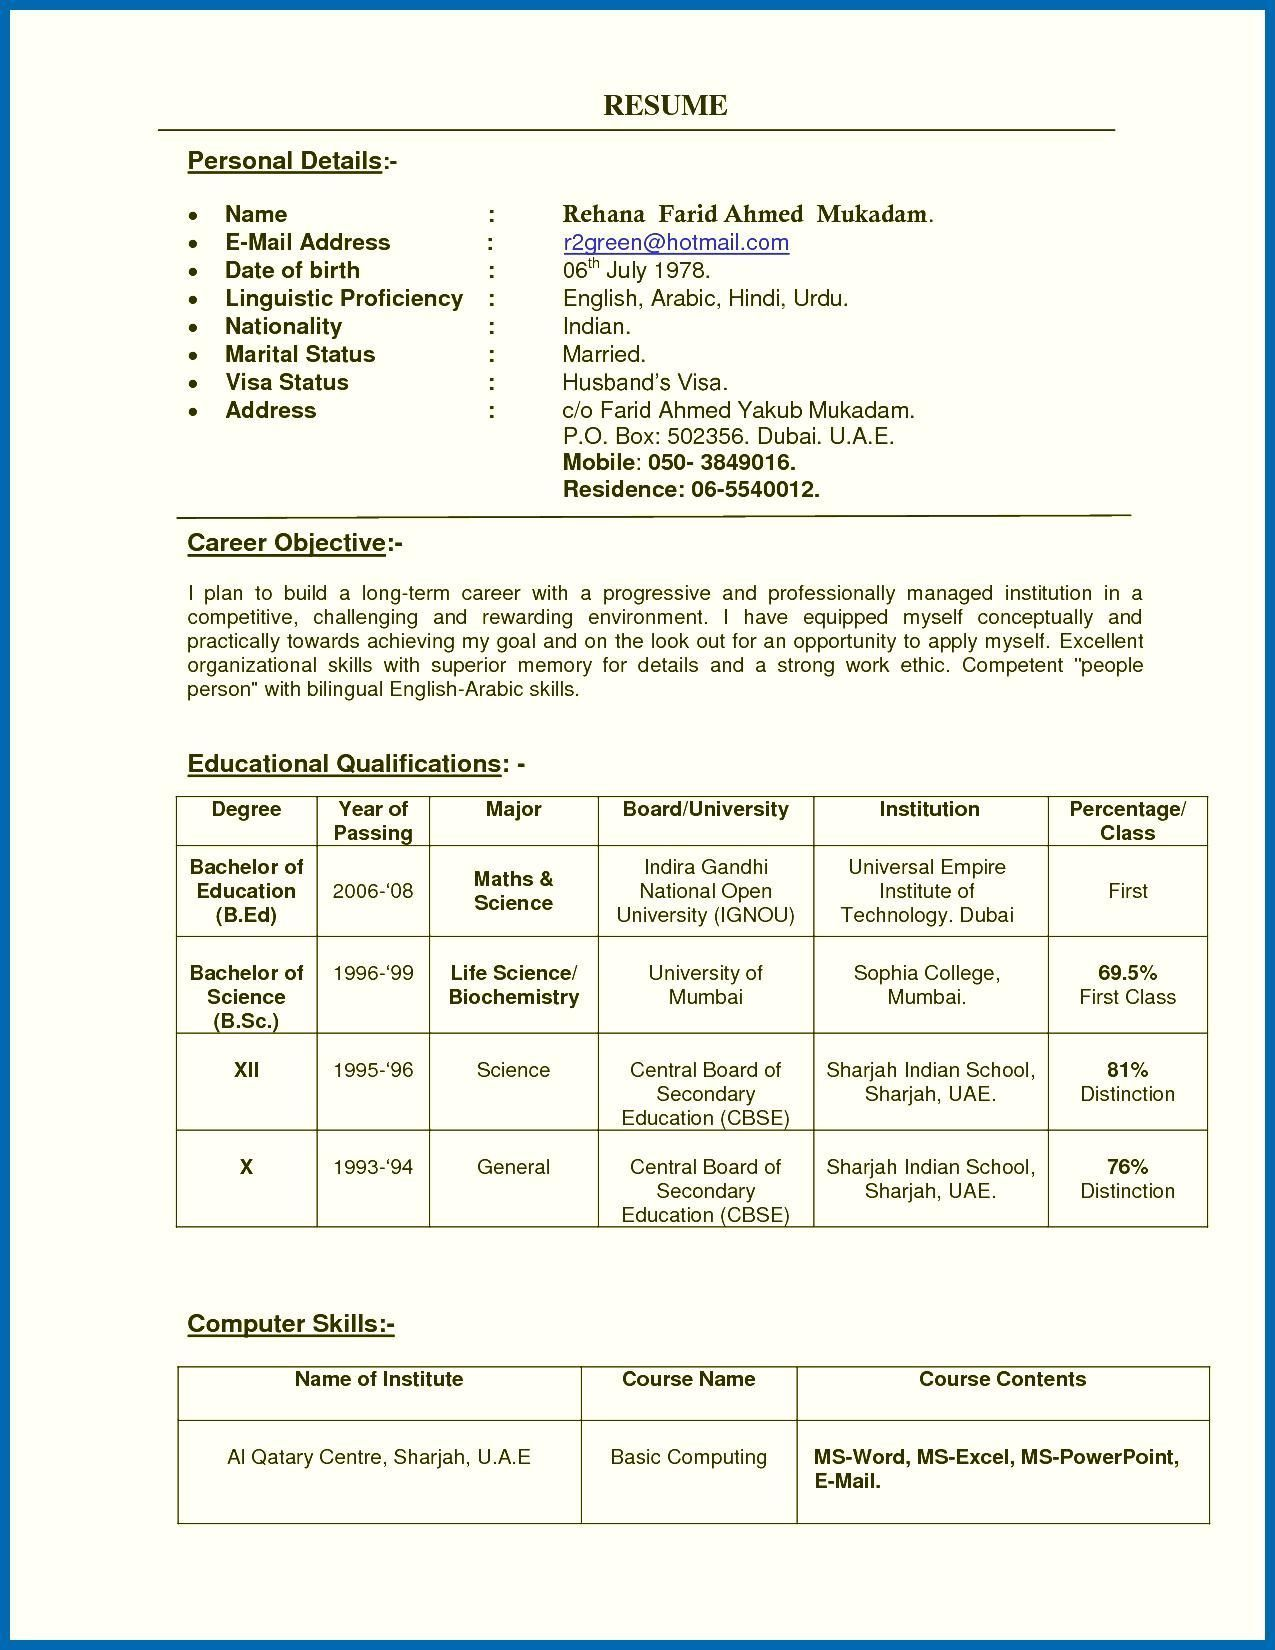 002 Marvelou Resume Sample For Teaching Job In India High Definition  School Principal PositionFull